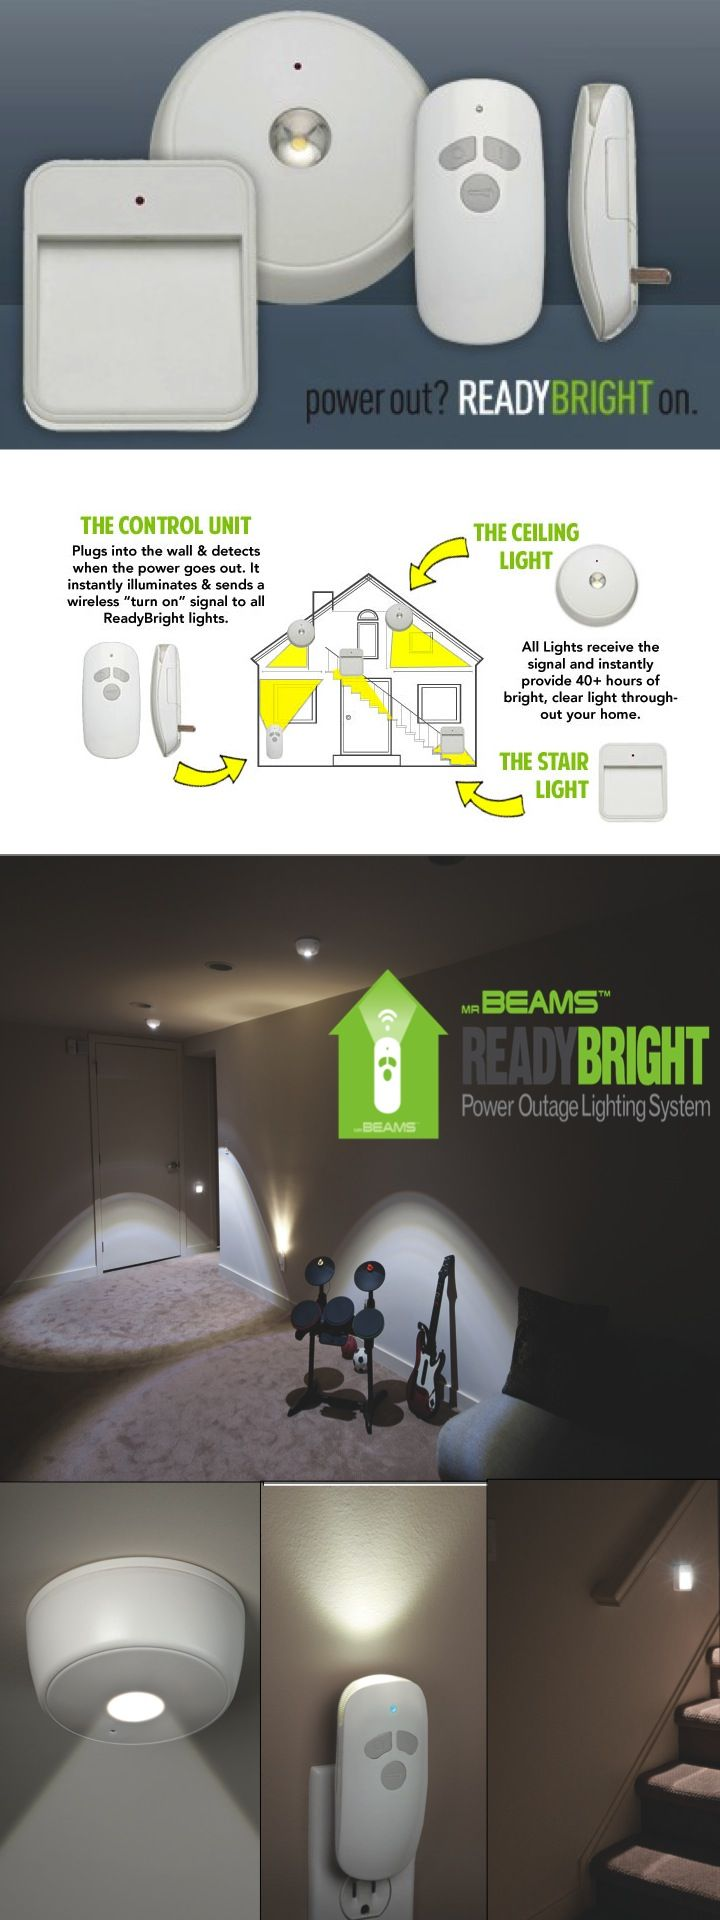 Something every home needs! Be prepared and keep your family safe the next time the power goes out, with the ReadyBright Power Outage Kit. These lights can be used for up to 40 hours on one set of batteries.